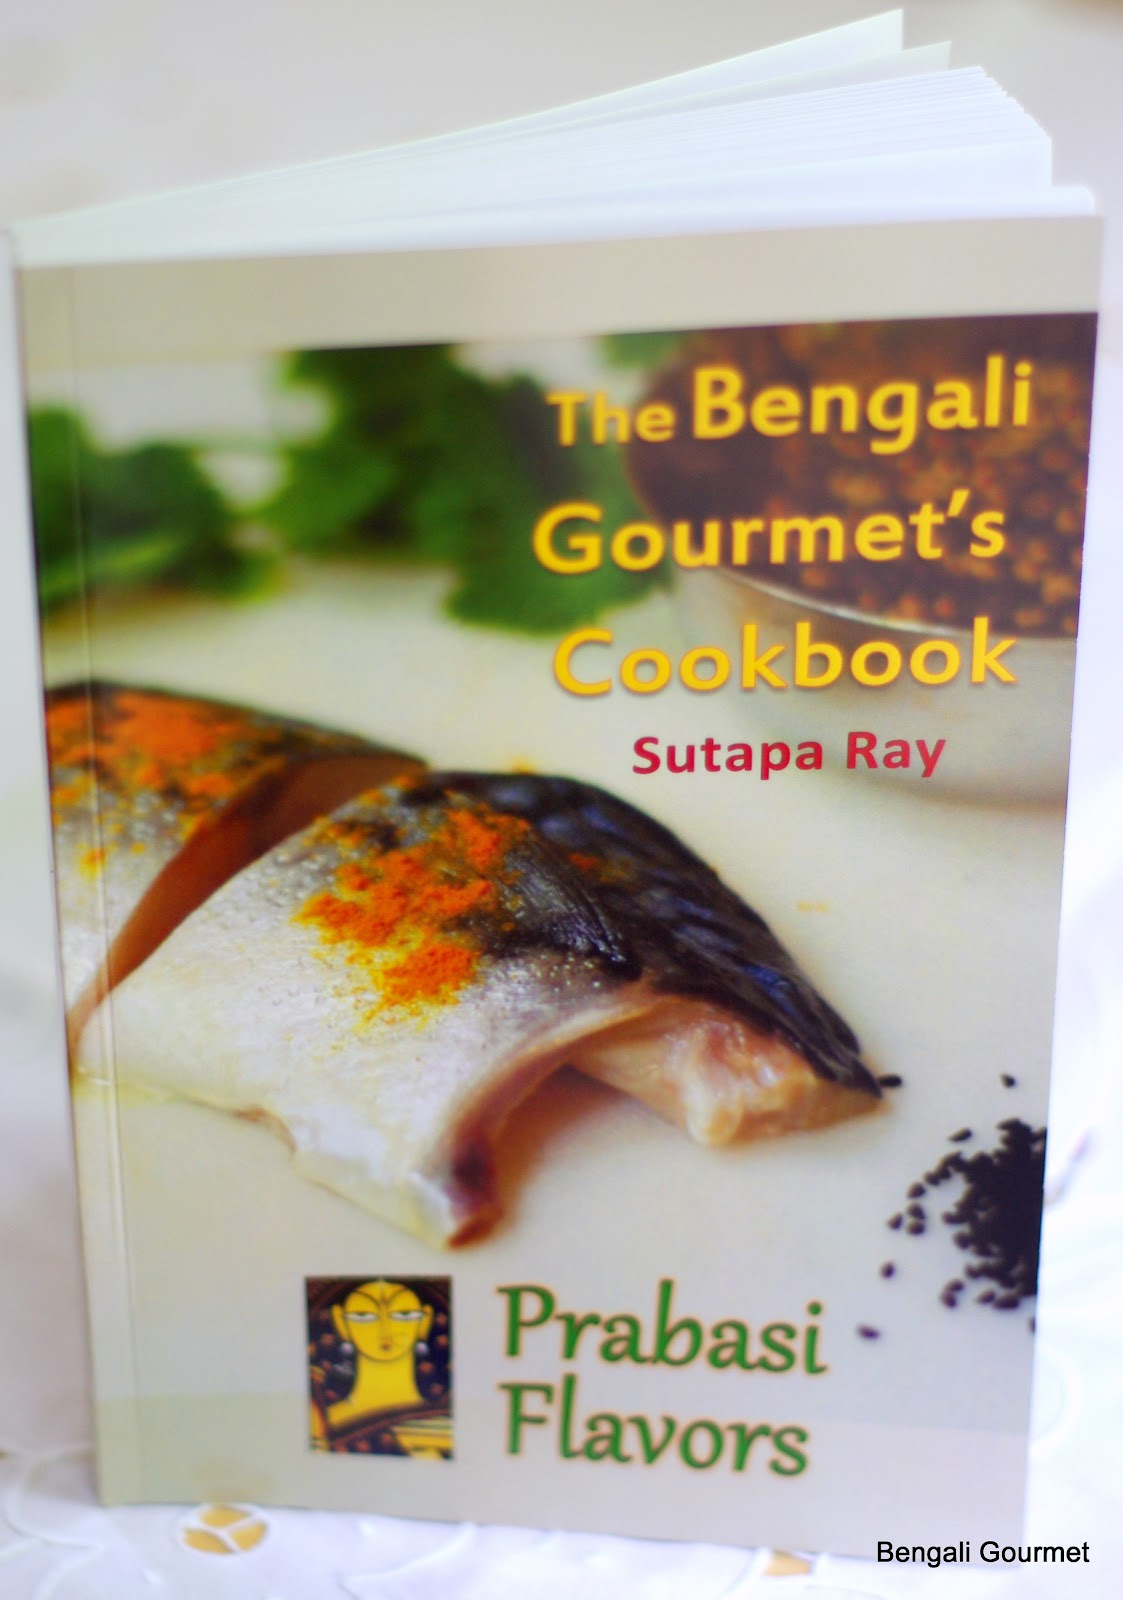 Bengali gourmets book tour the bengali gourmets blog gorgeous 250 page full color cookbook 160 original recipes 130 color photos 125 brand new recipes not available online foreword by nyt food forumfinder Images